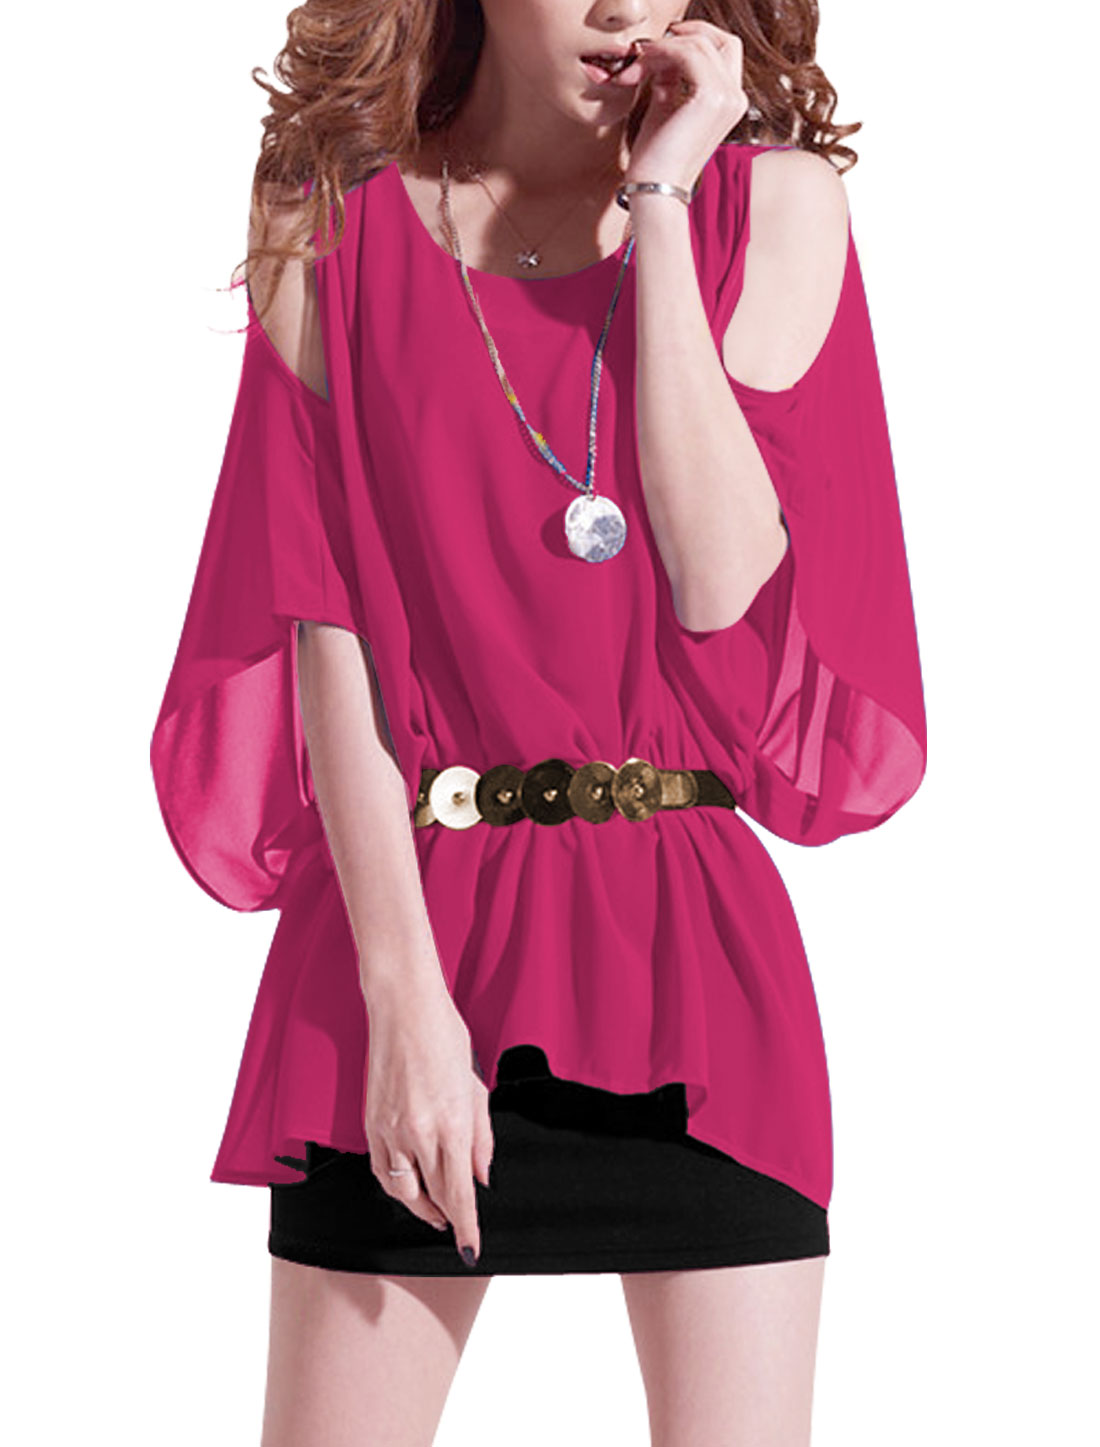 Lady Fuchsia Fake Two Piece Design Stretchy Waist Blouson Dress w Waist Strap S